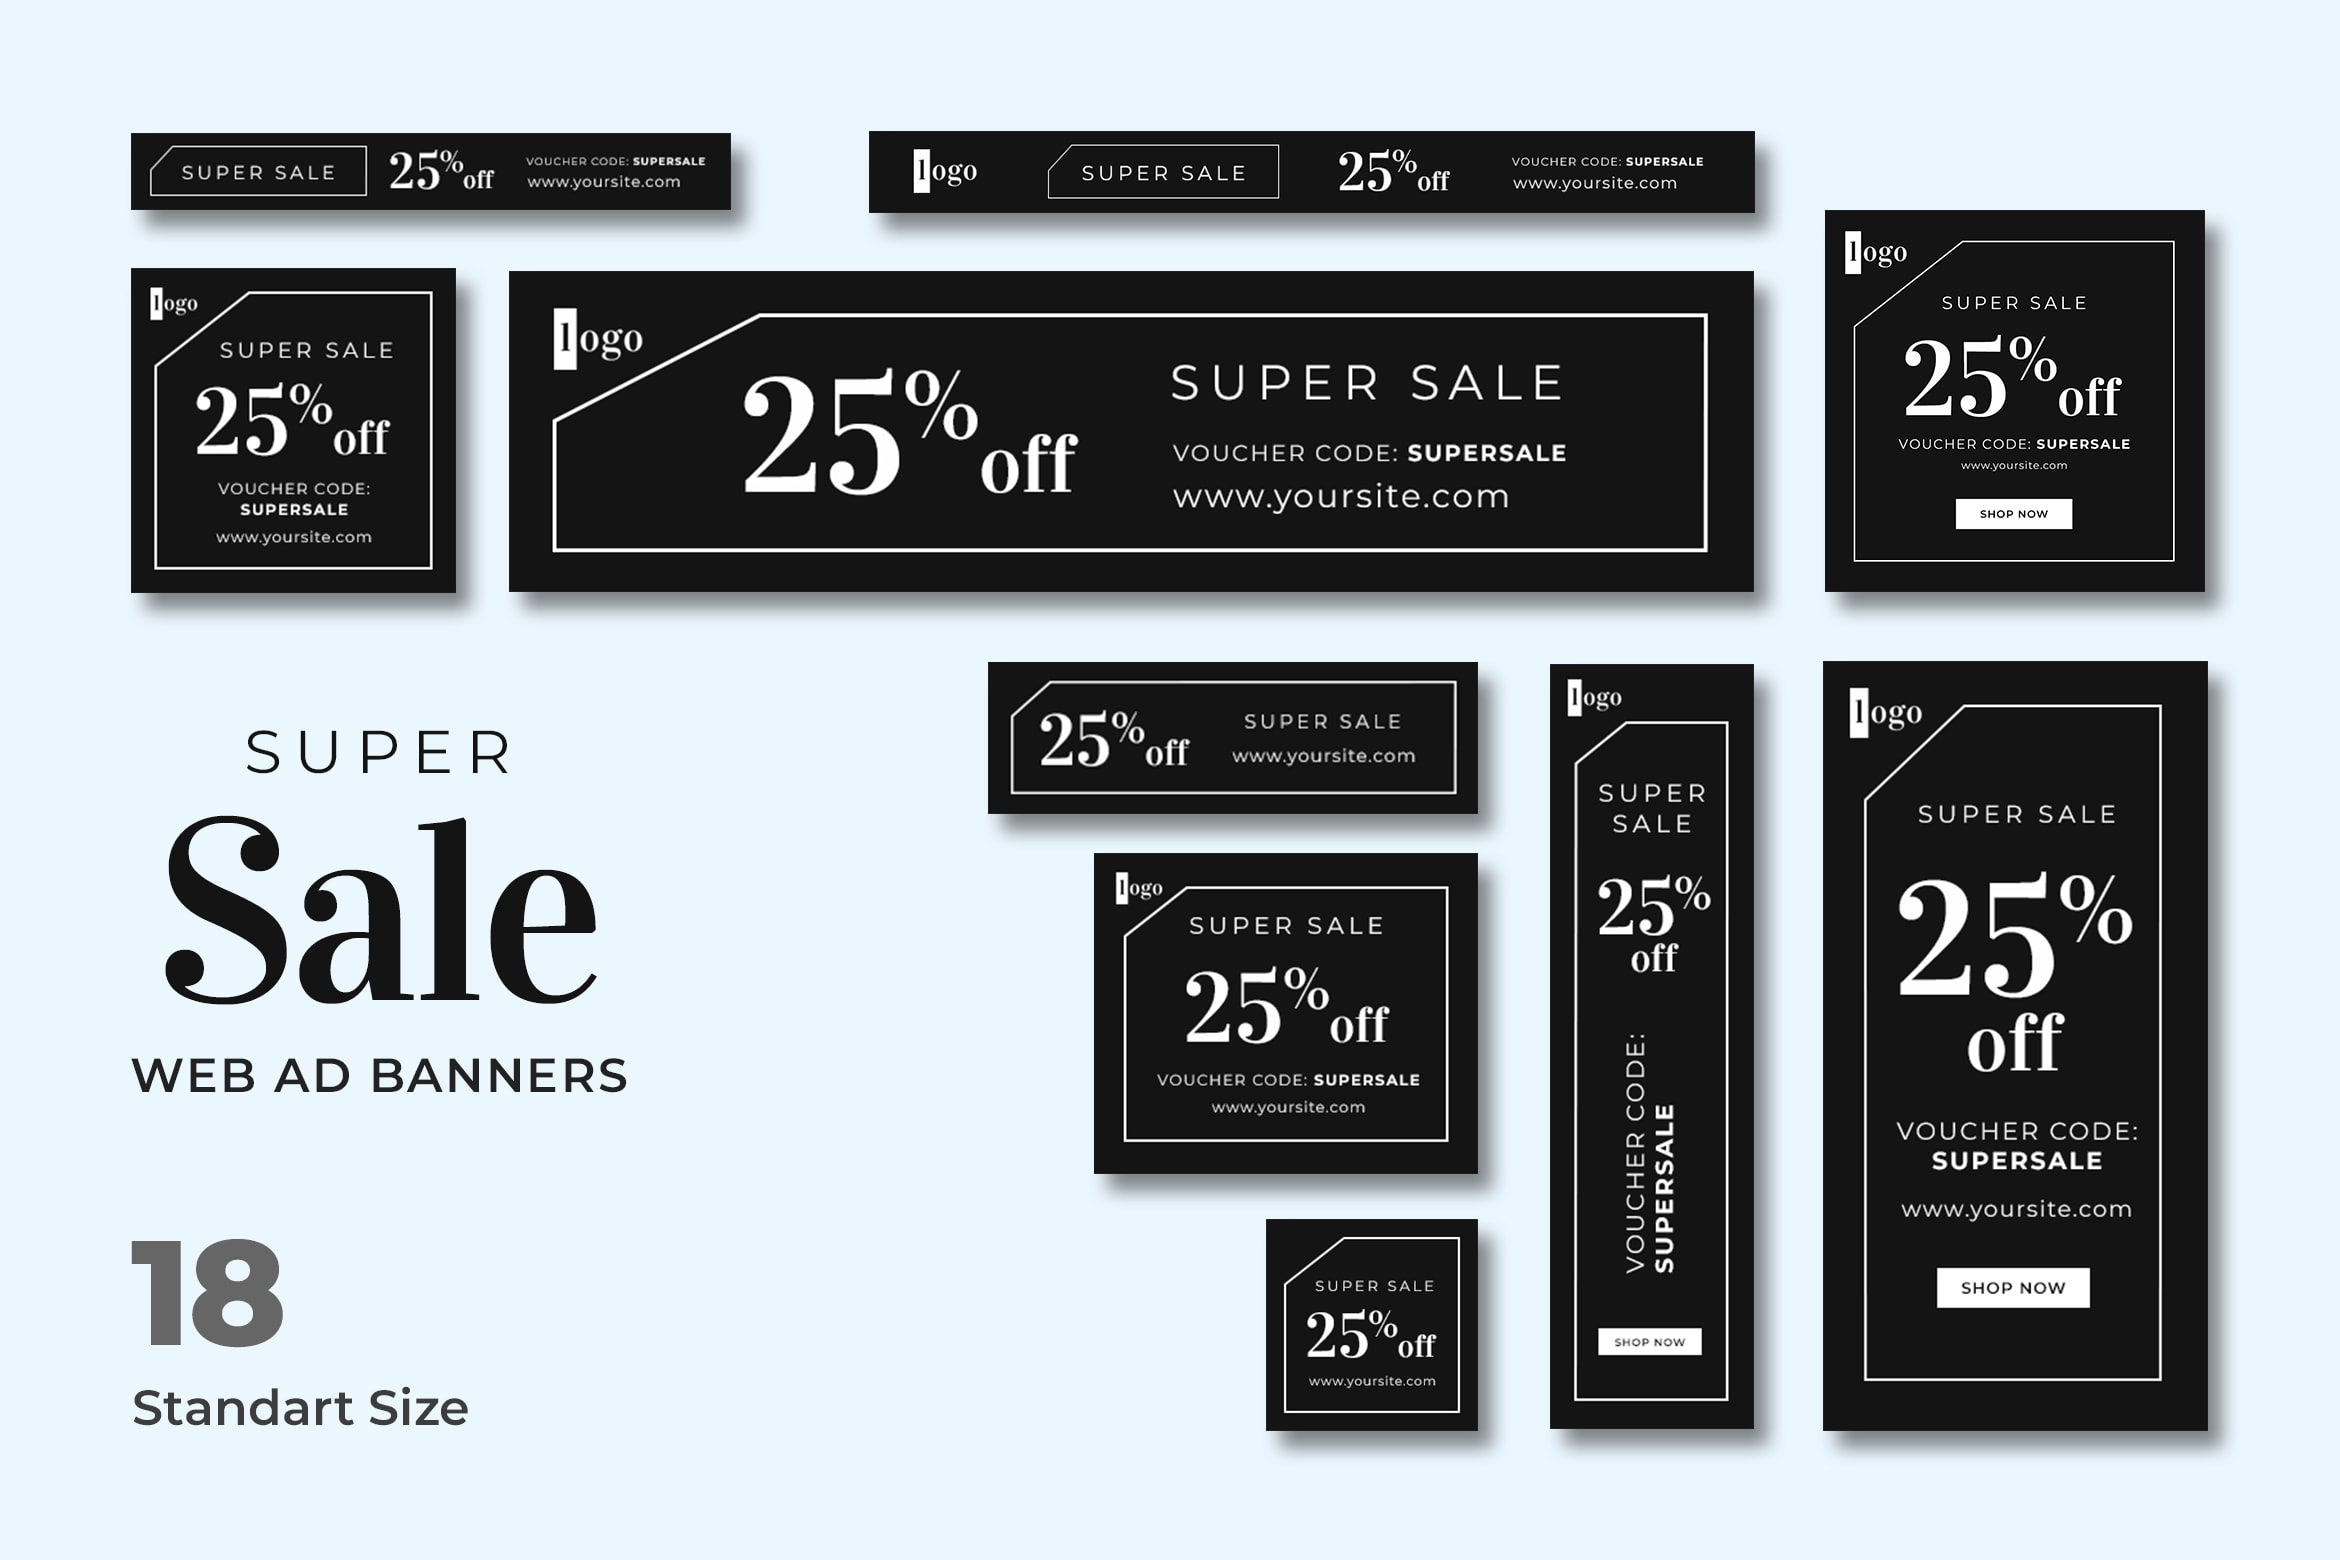 Web Banner - Super Sale Voucher, there are 18 regular good quality PSD banner template files, including Facebook & Instagram ads sizes, ready for your service, product, and campaign. Every PSD file is neatly organized and fully organized. You can use this banner for Google AdWords & social media too. (Including Facebook & Instagram ad sizes). You can edit and adjust this template in Adobe Photoshop.